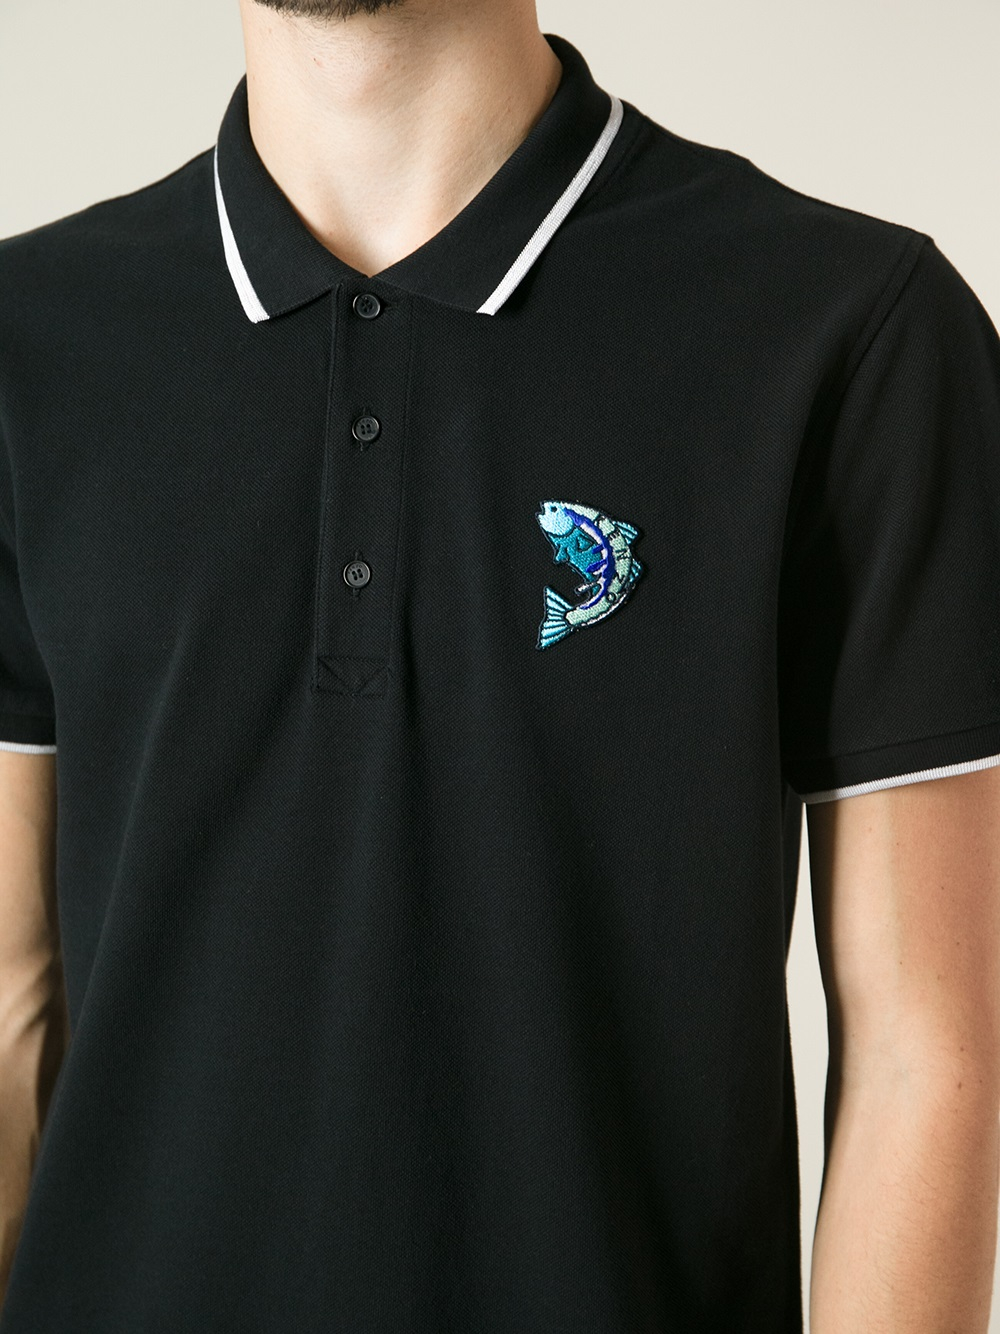 lyst kenzo fish polo shirt in black for men